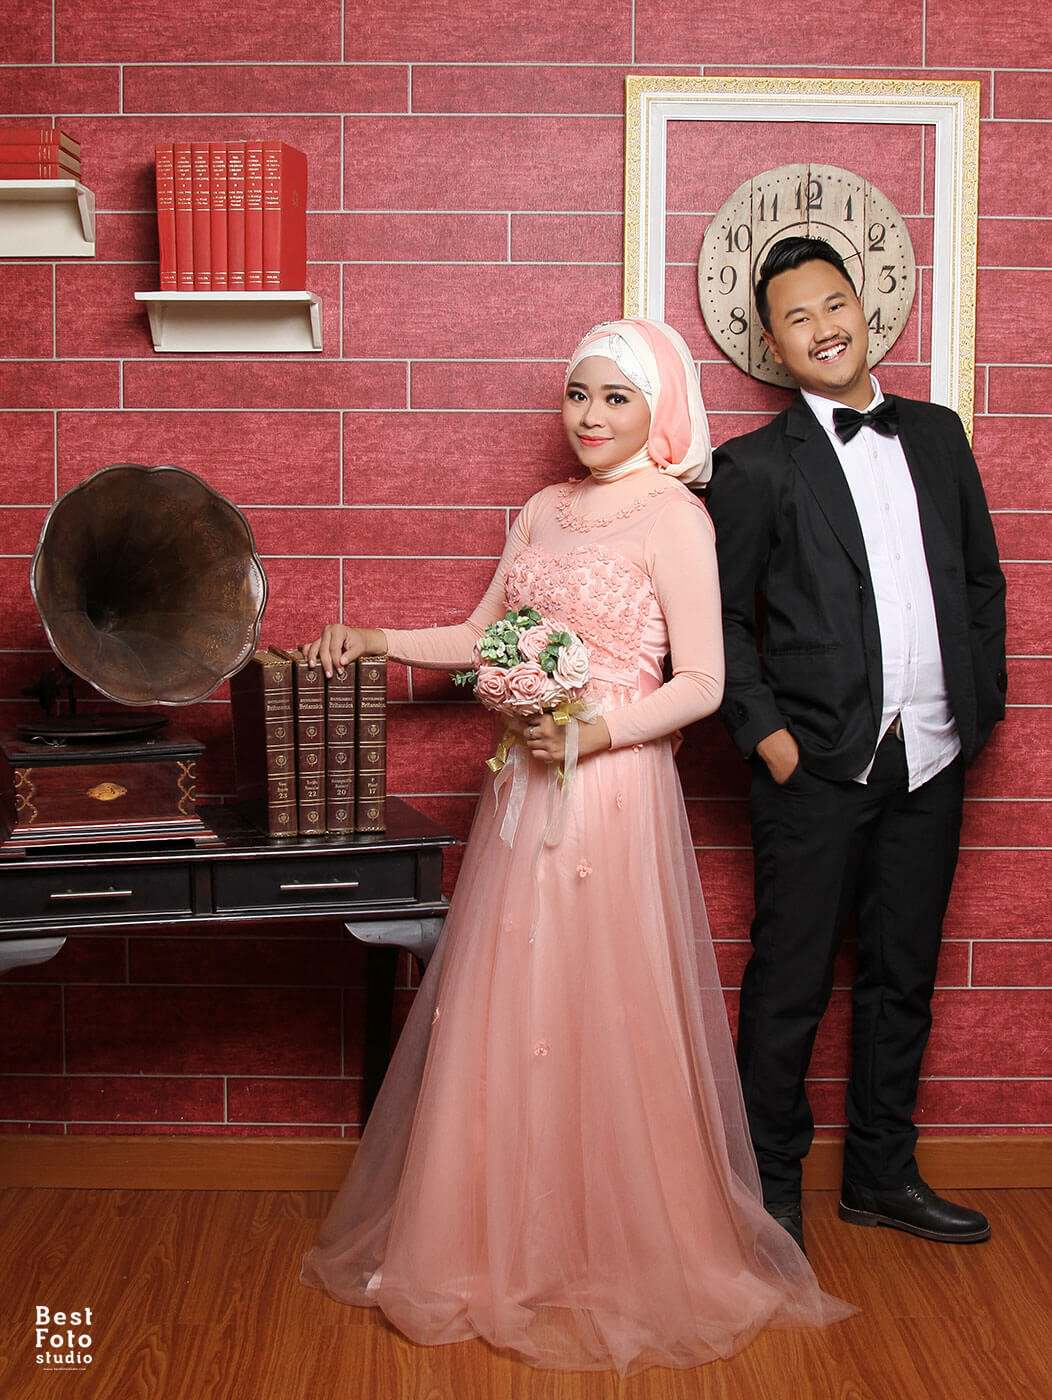 Romantis Indoor Prewedding for Puput and Fadli by BEST FOTO STUDIO 001